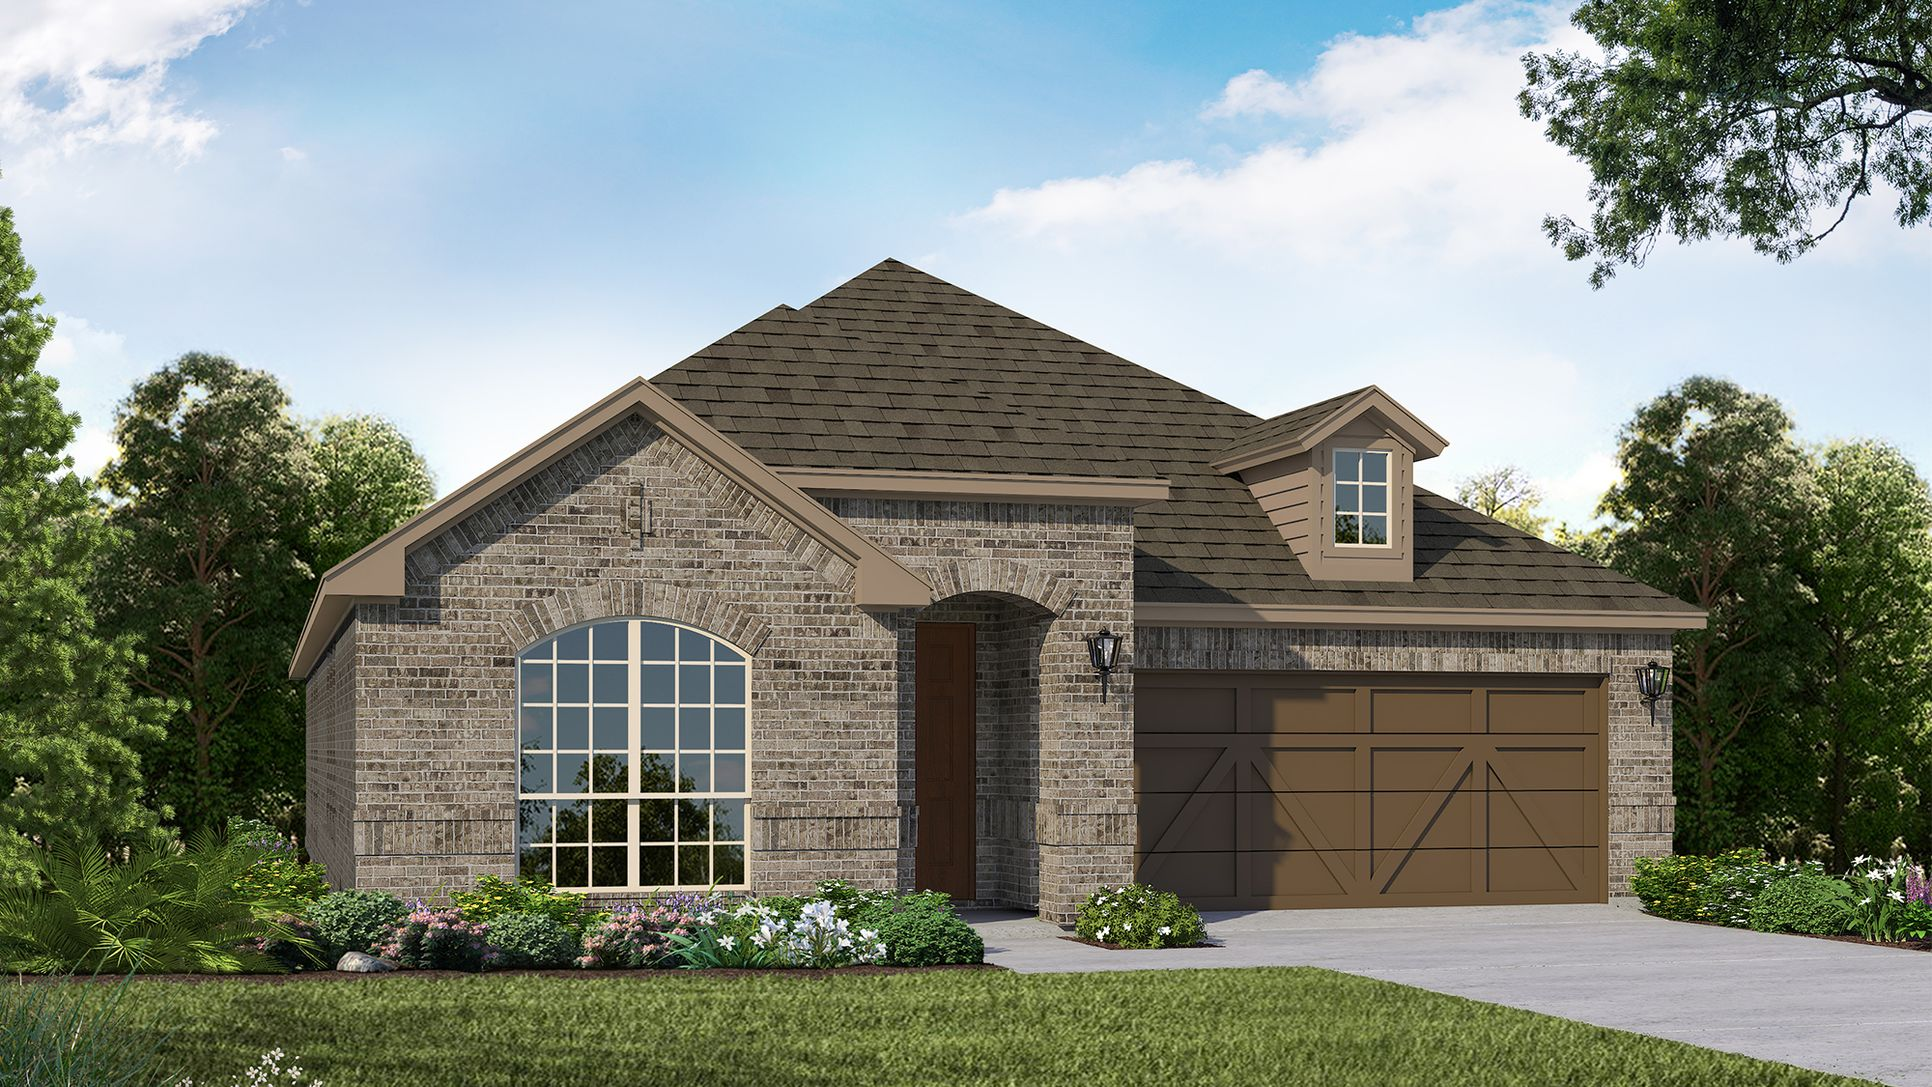 Exterior:Plan 1522 Elevation A by American Legend Homes